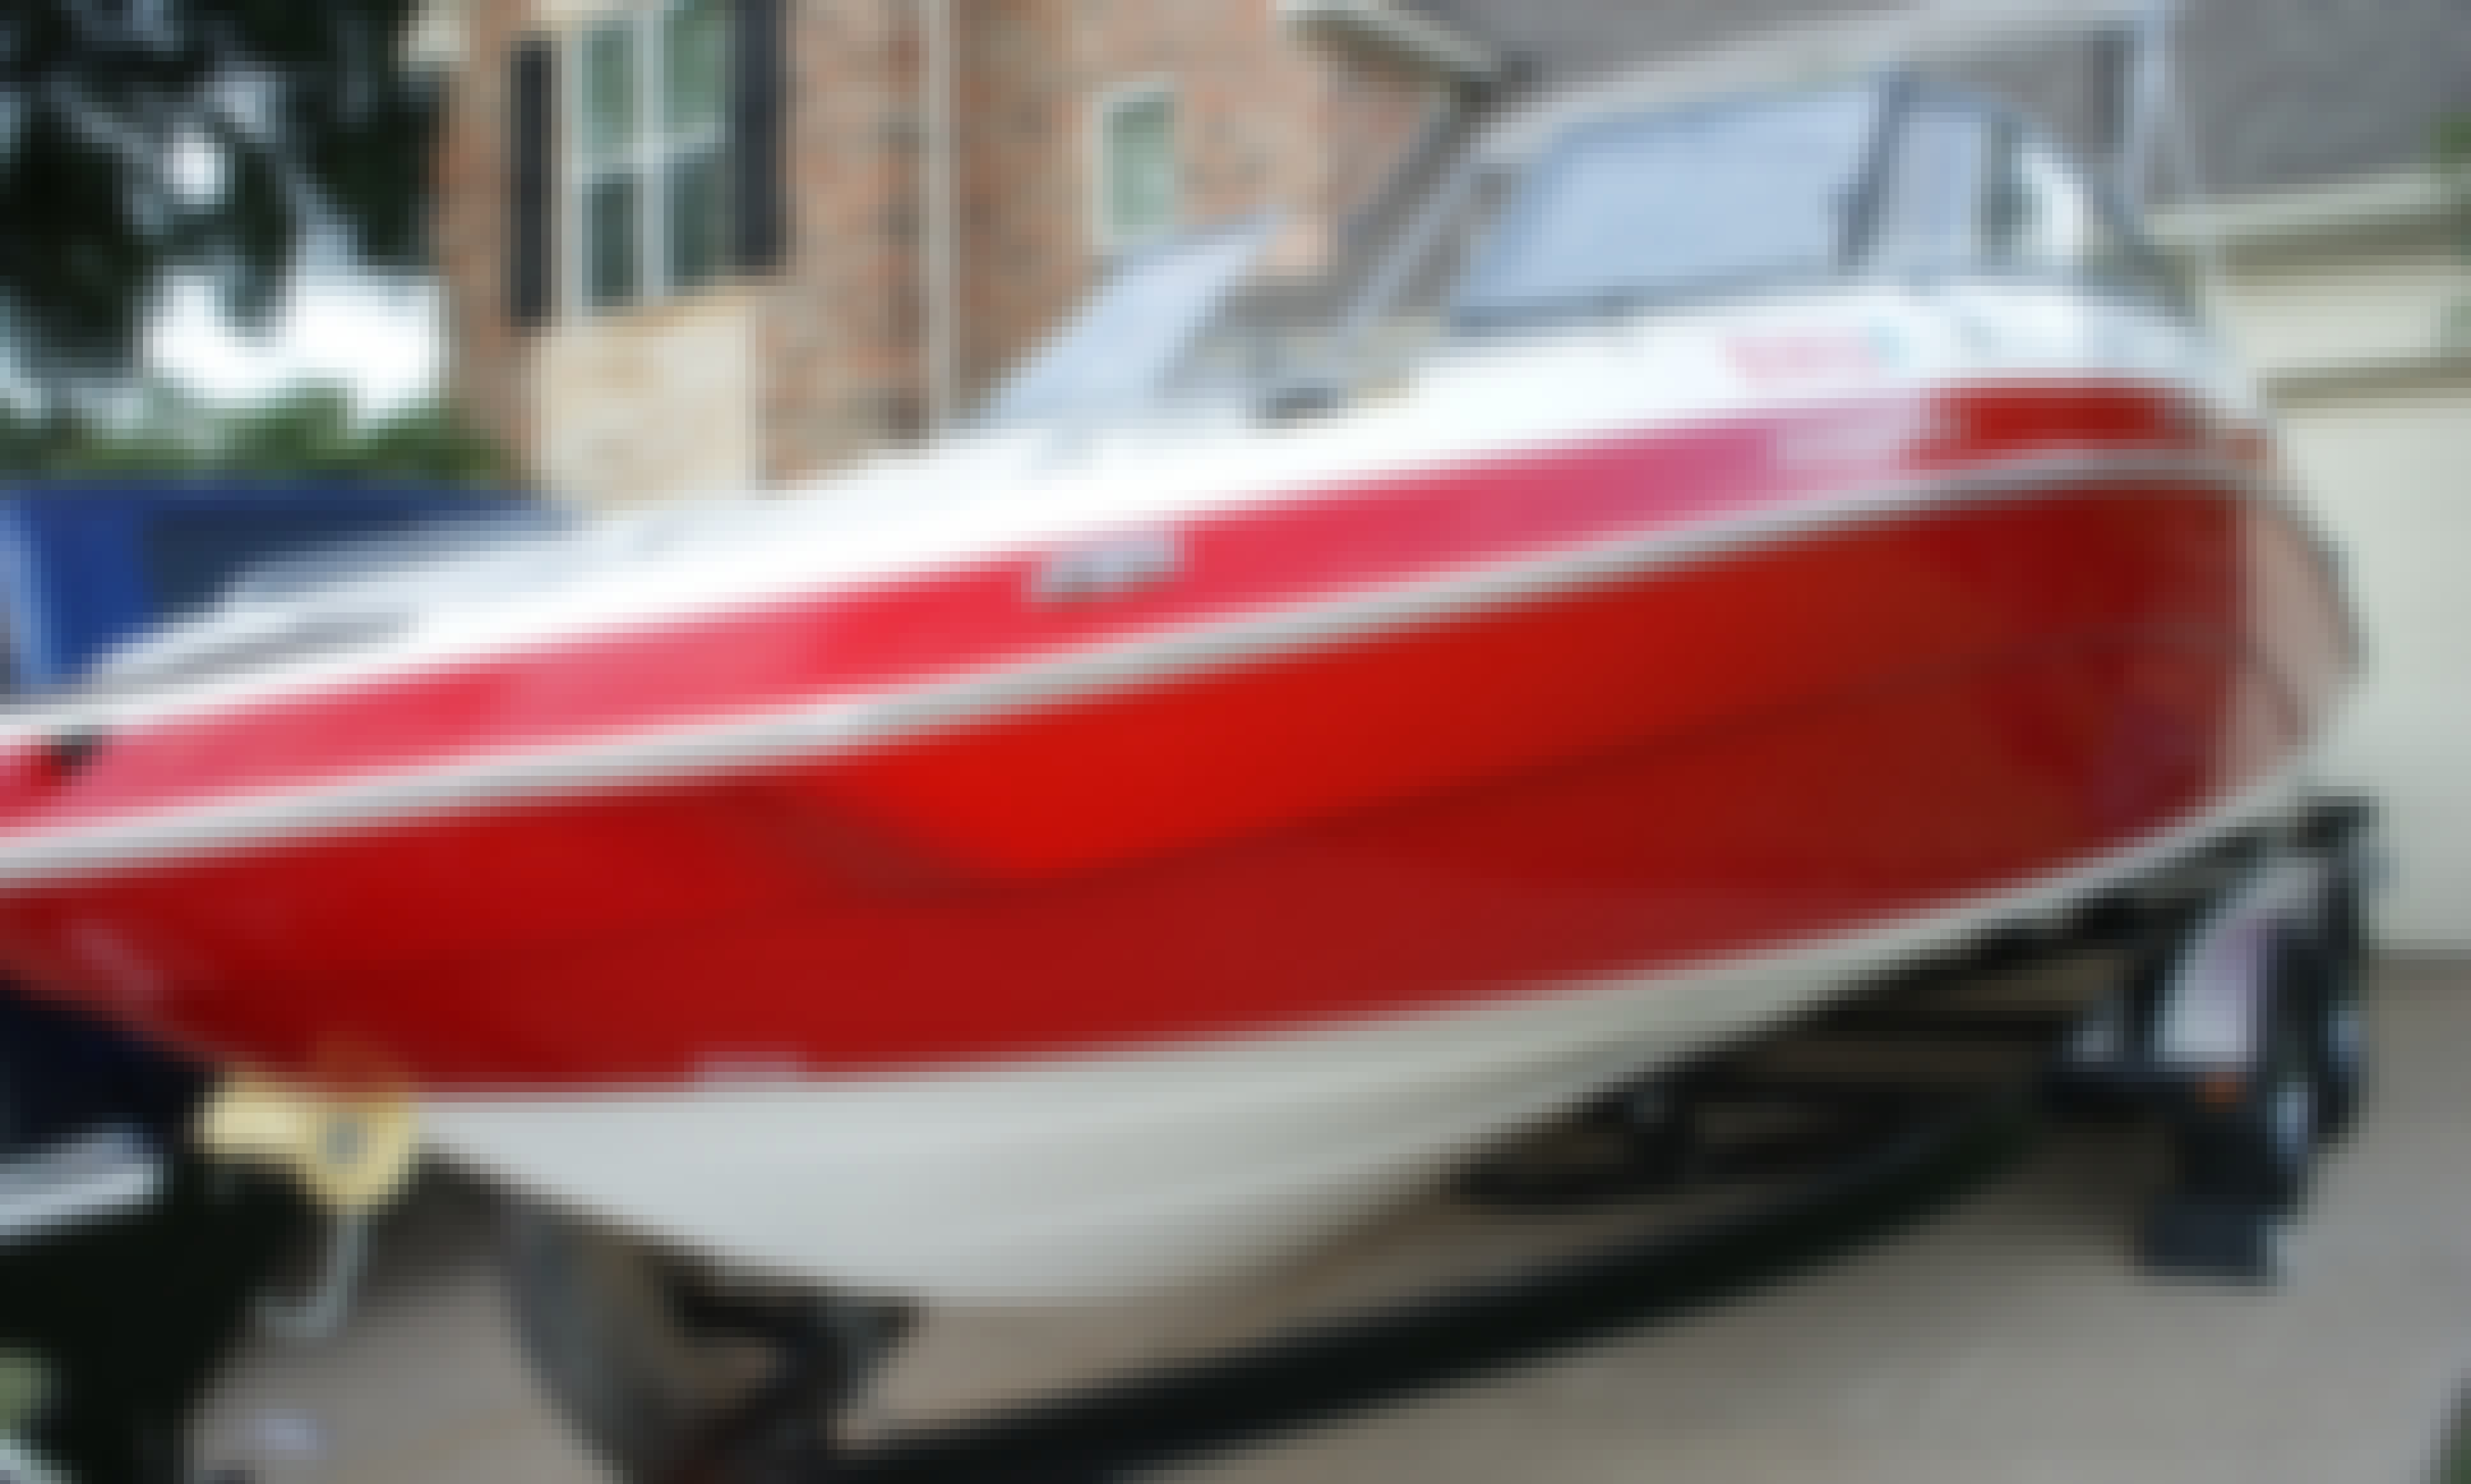 Yamaha sx 240 for Rent in Garland